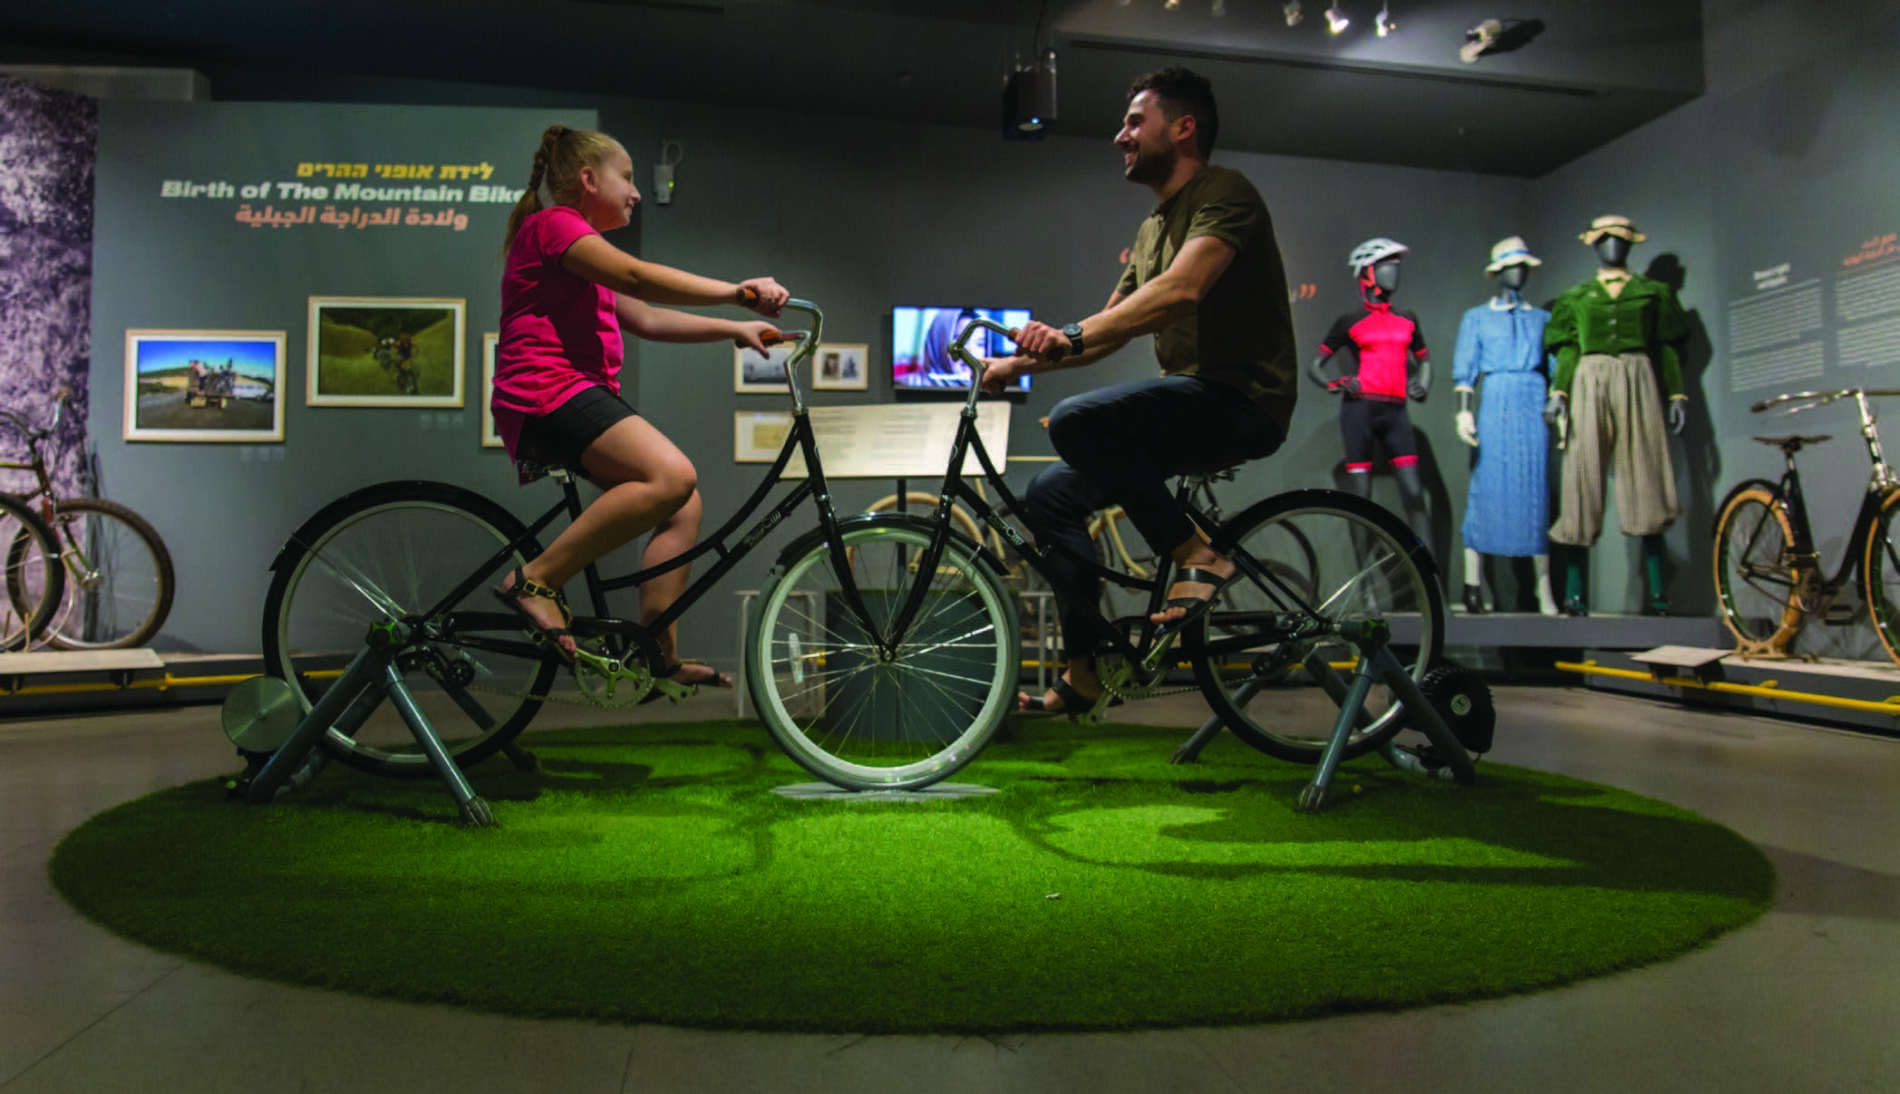 Bicycles – 200 Years in the Making